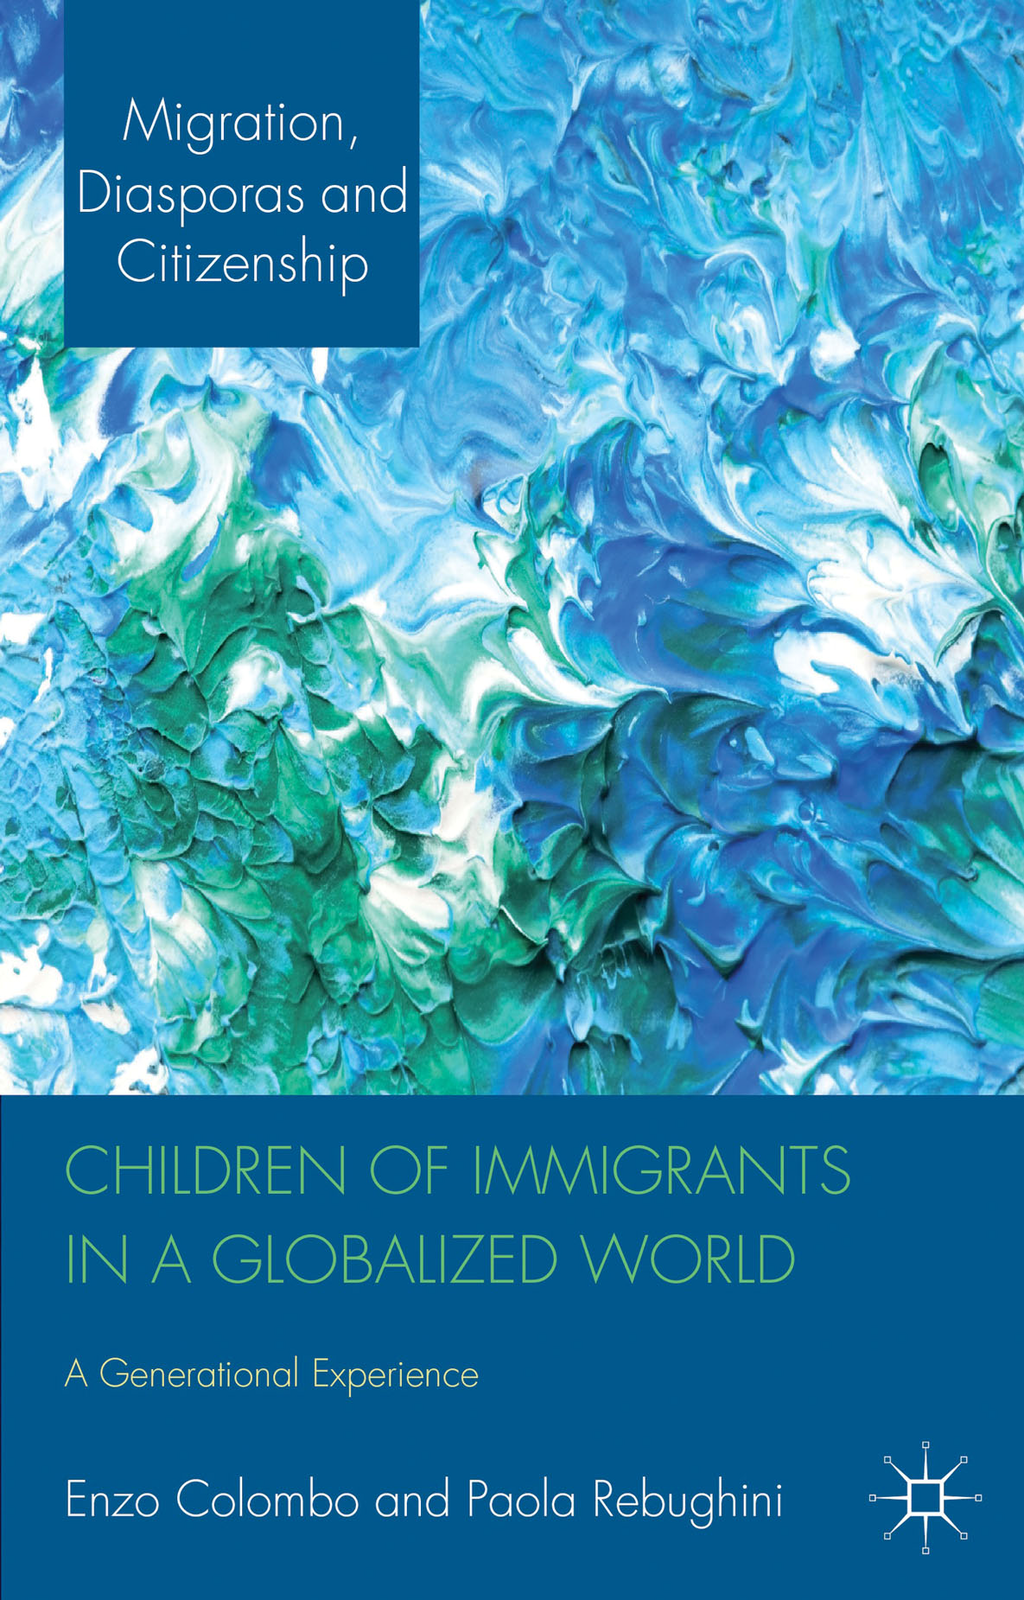 Children of Immigrants in a Globalized World A Generational Experience